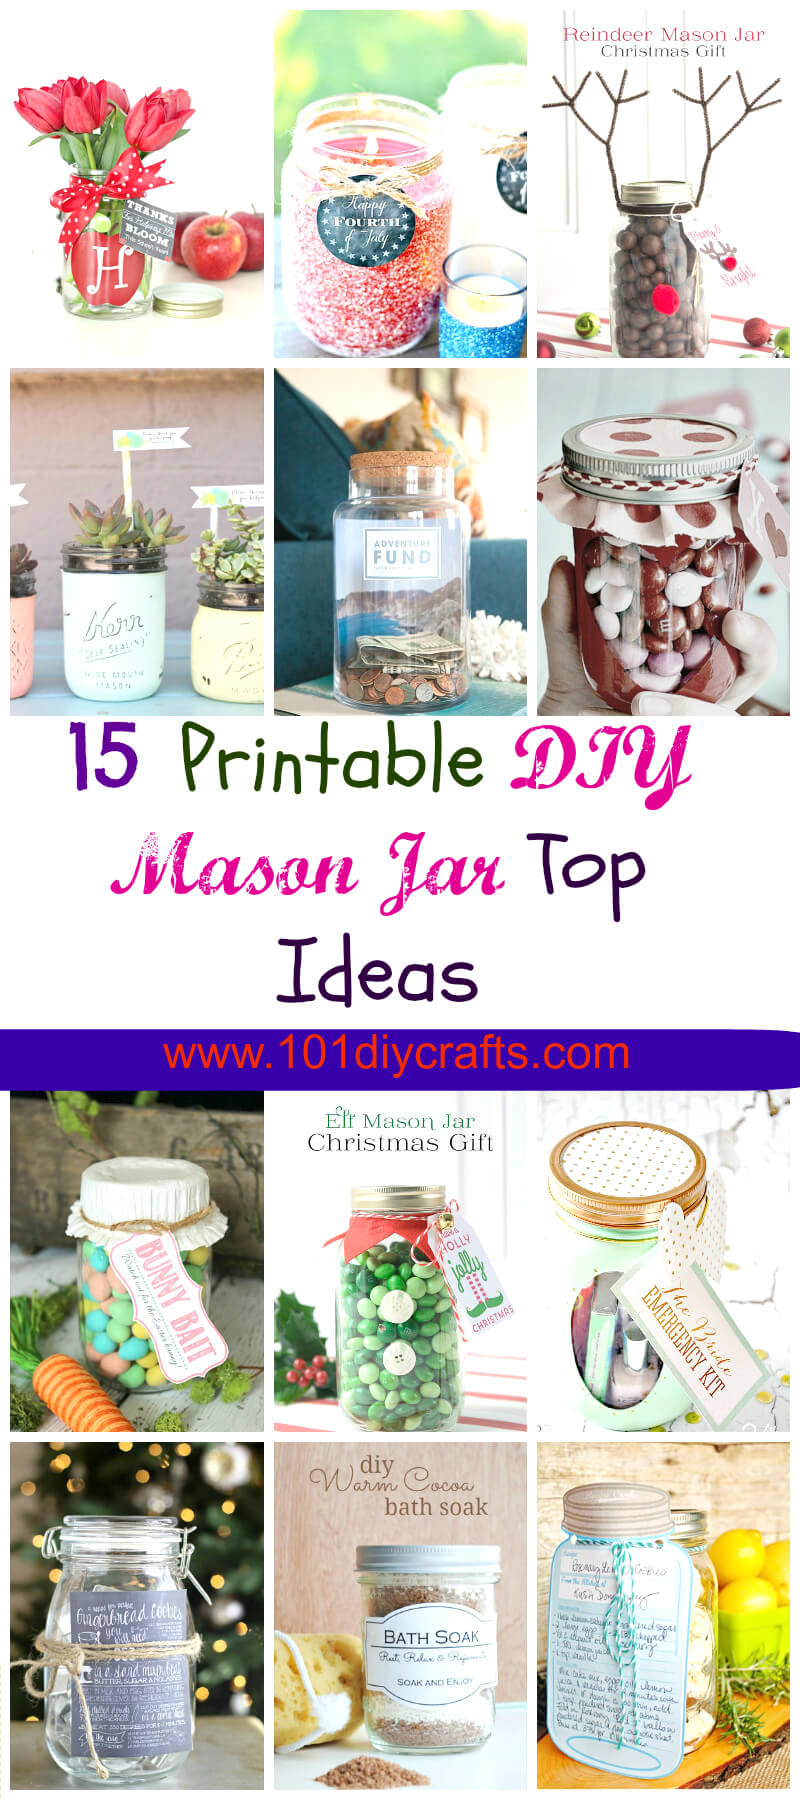 15 DIY Printable Mason Jar Top Ideas